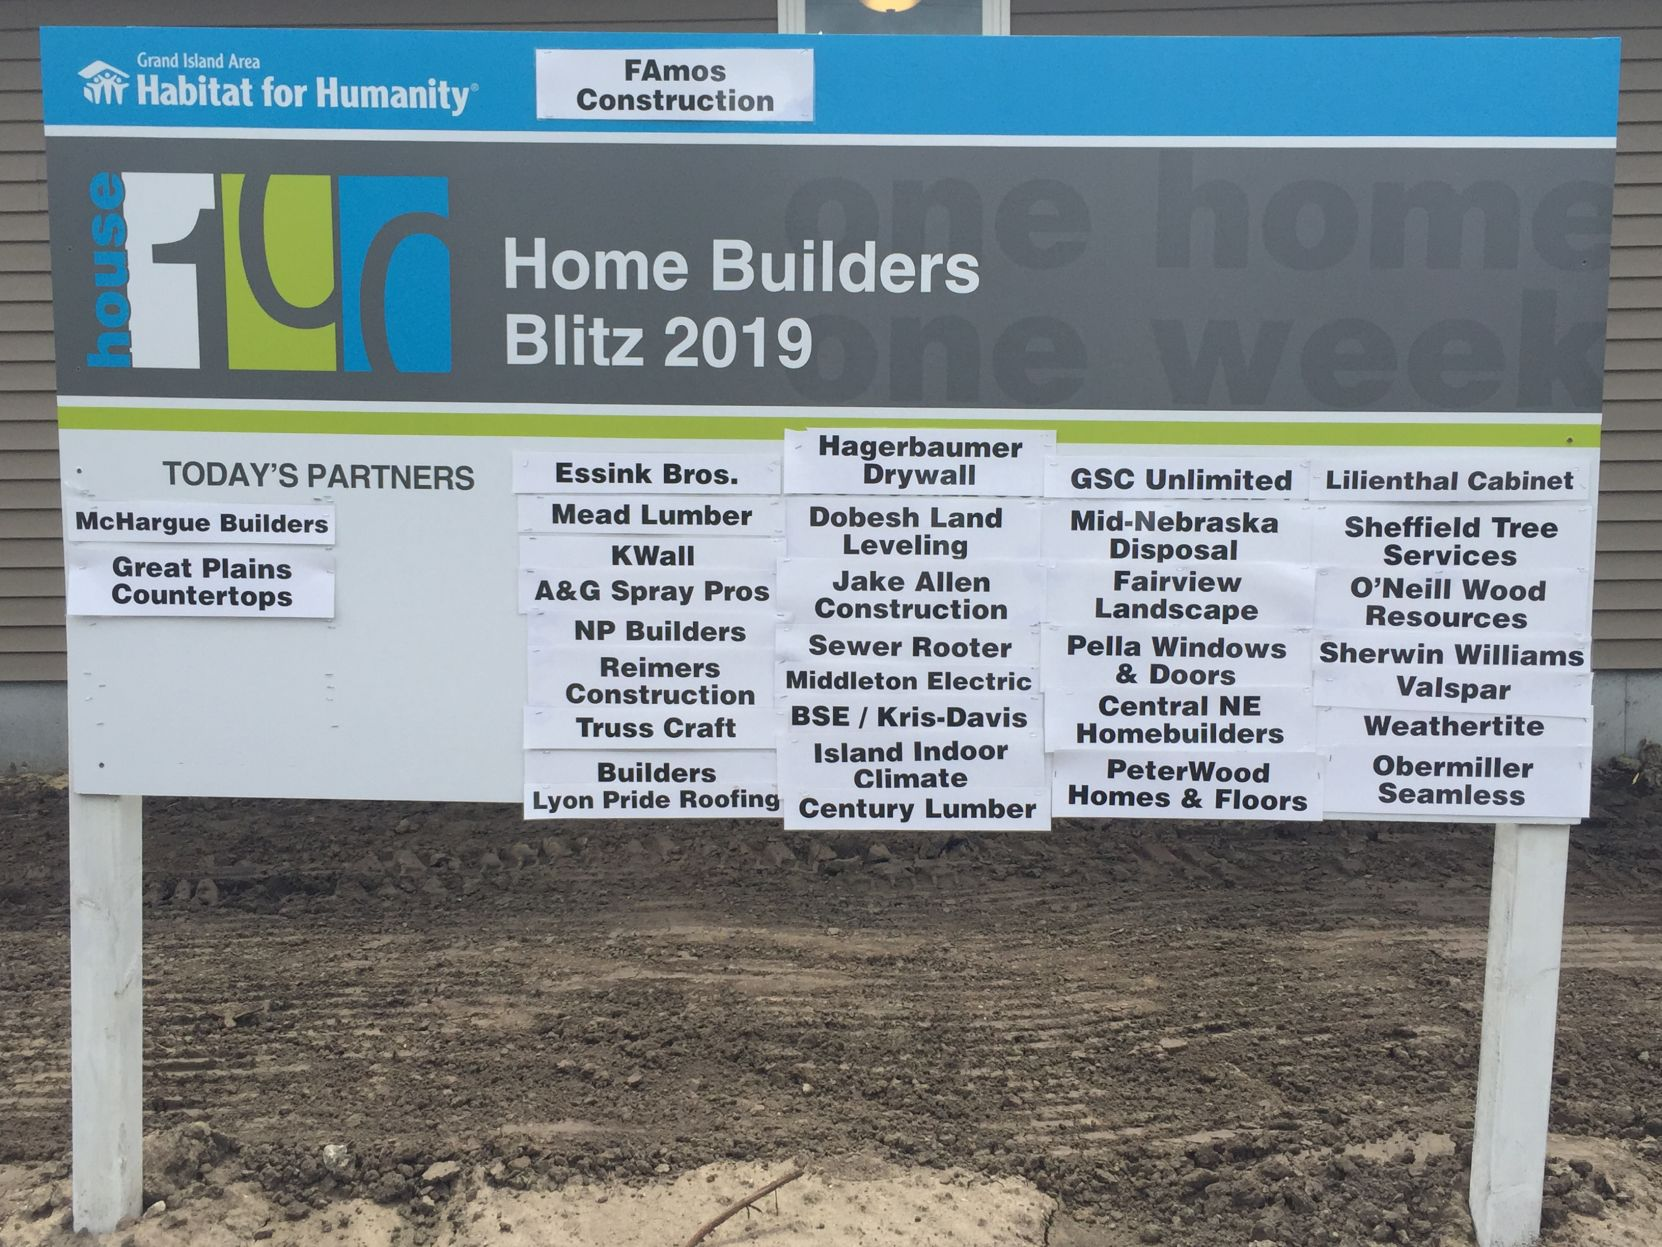 Grand Habitat Lyon Habitat For Humanity Welcomes Its 100th Home Local News